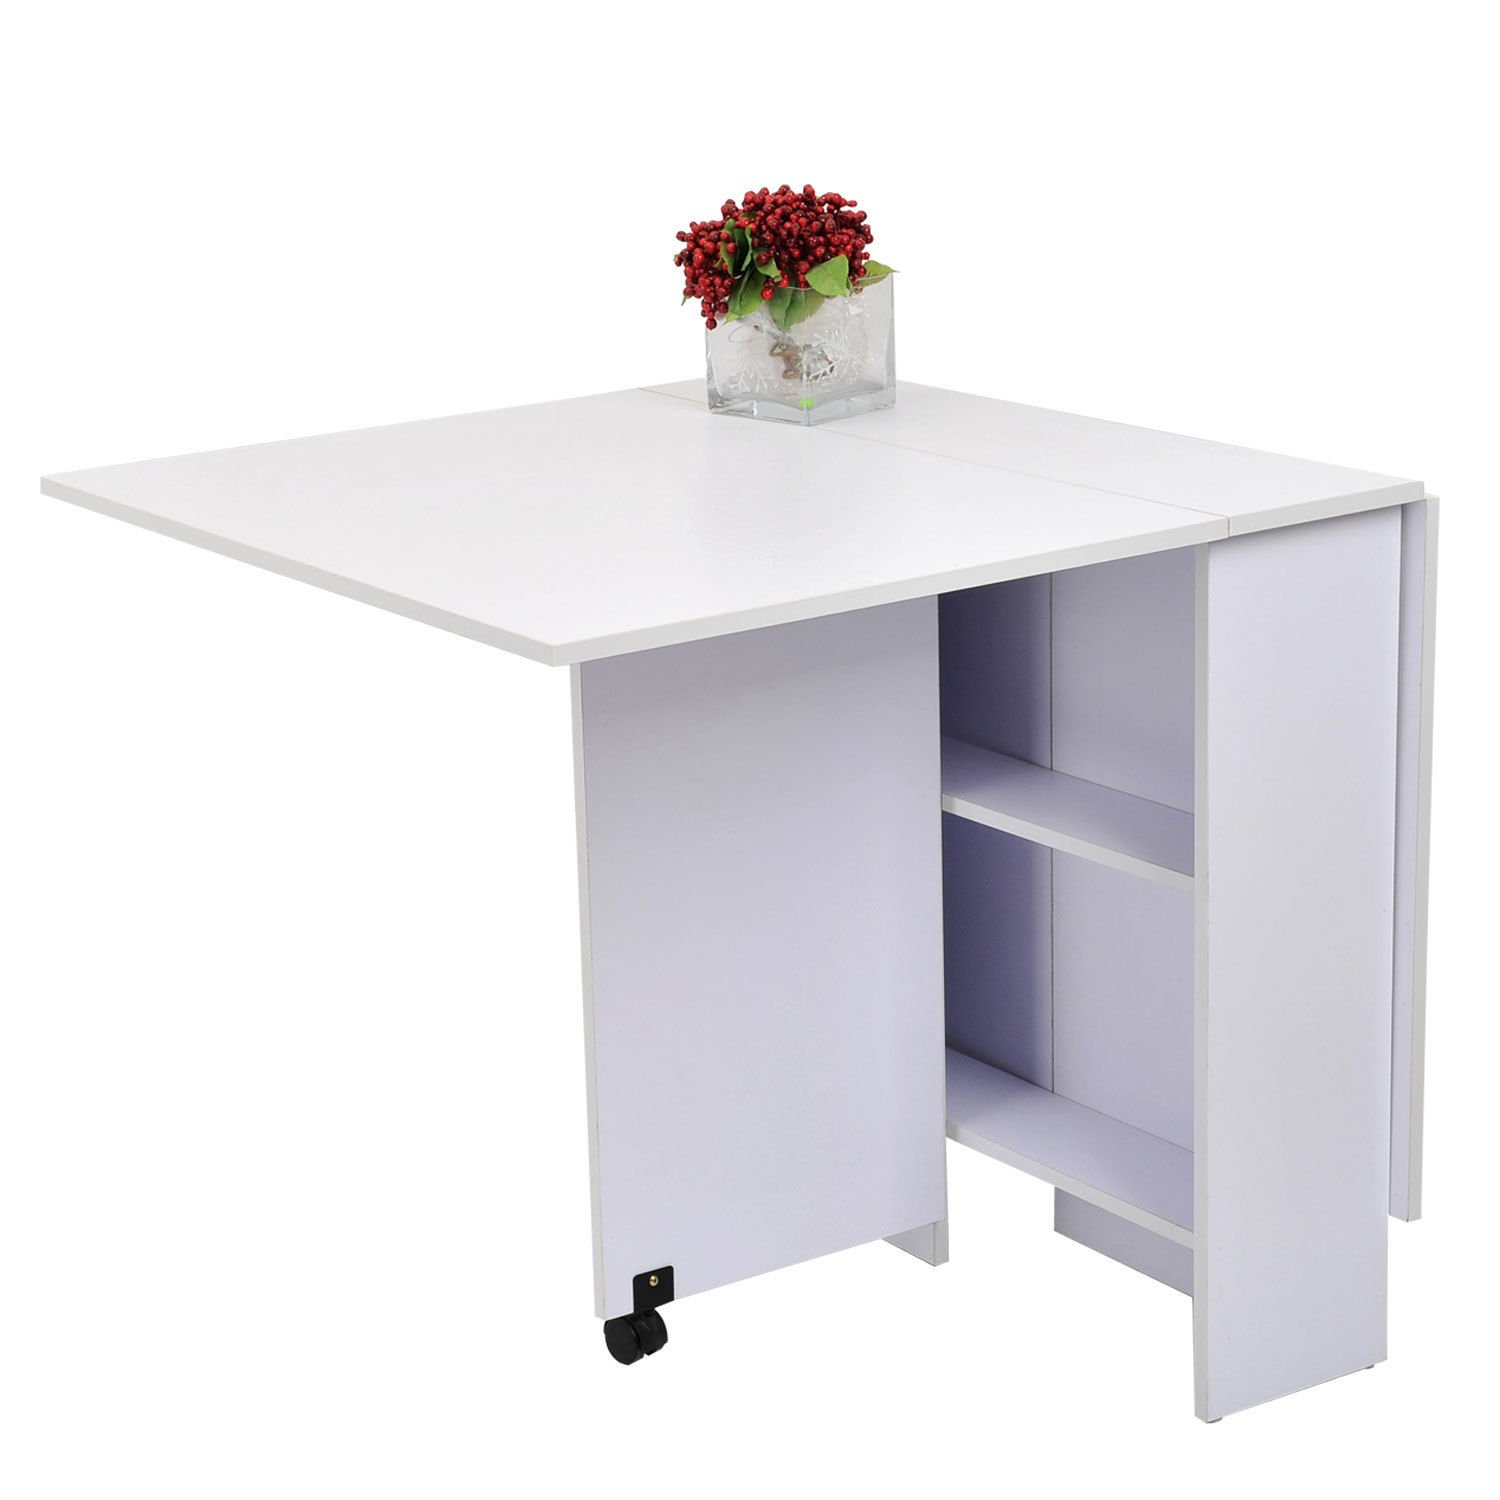 Folding Dining Table Drop Leaf Table Expandable Multifunctional w/ 2 Shelves by SpiritOne